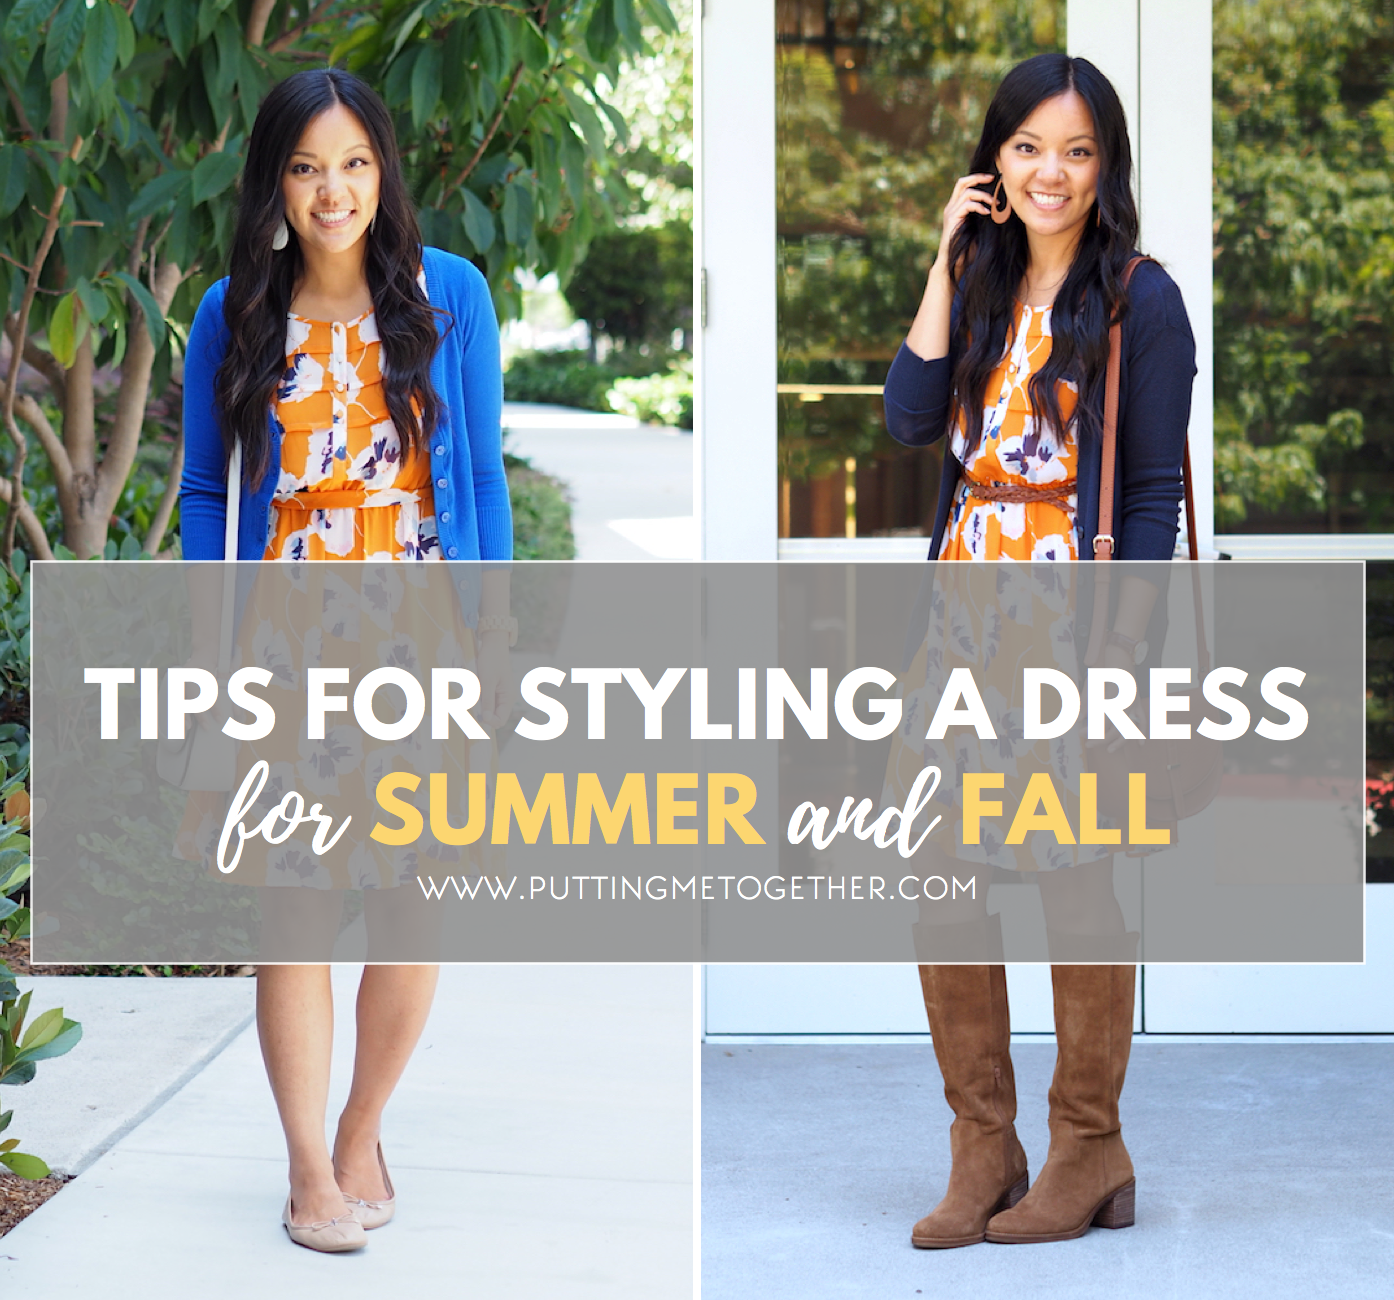 Wearing a Summer Dress in the Fall